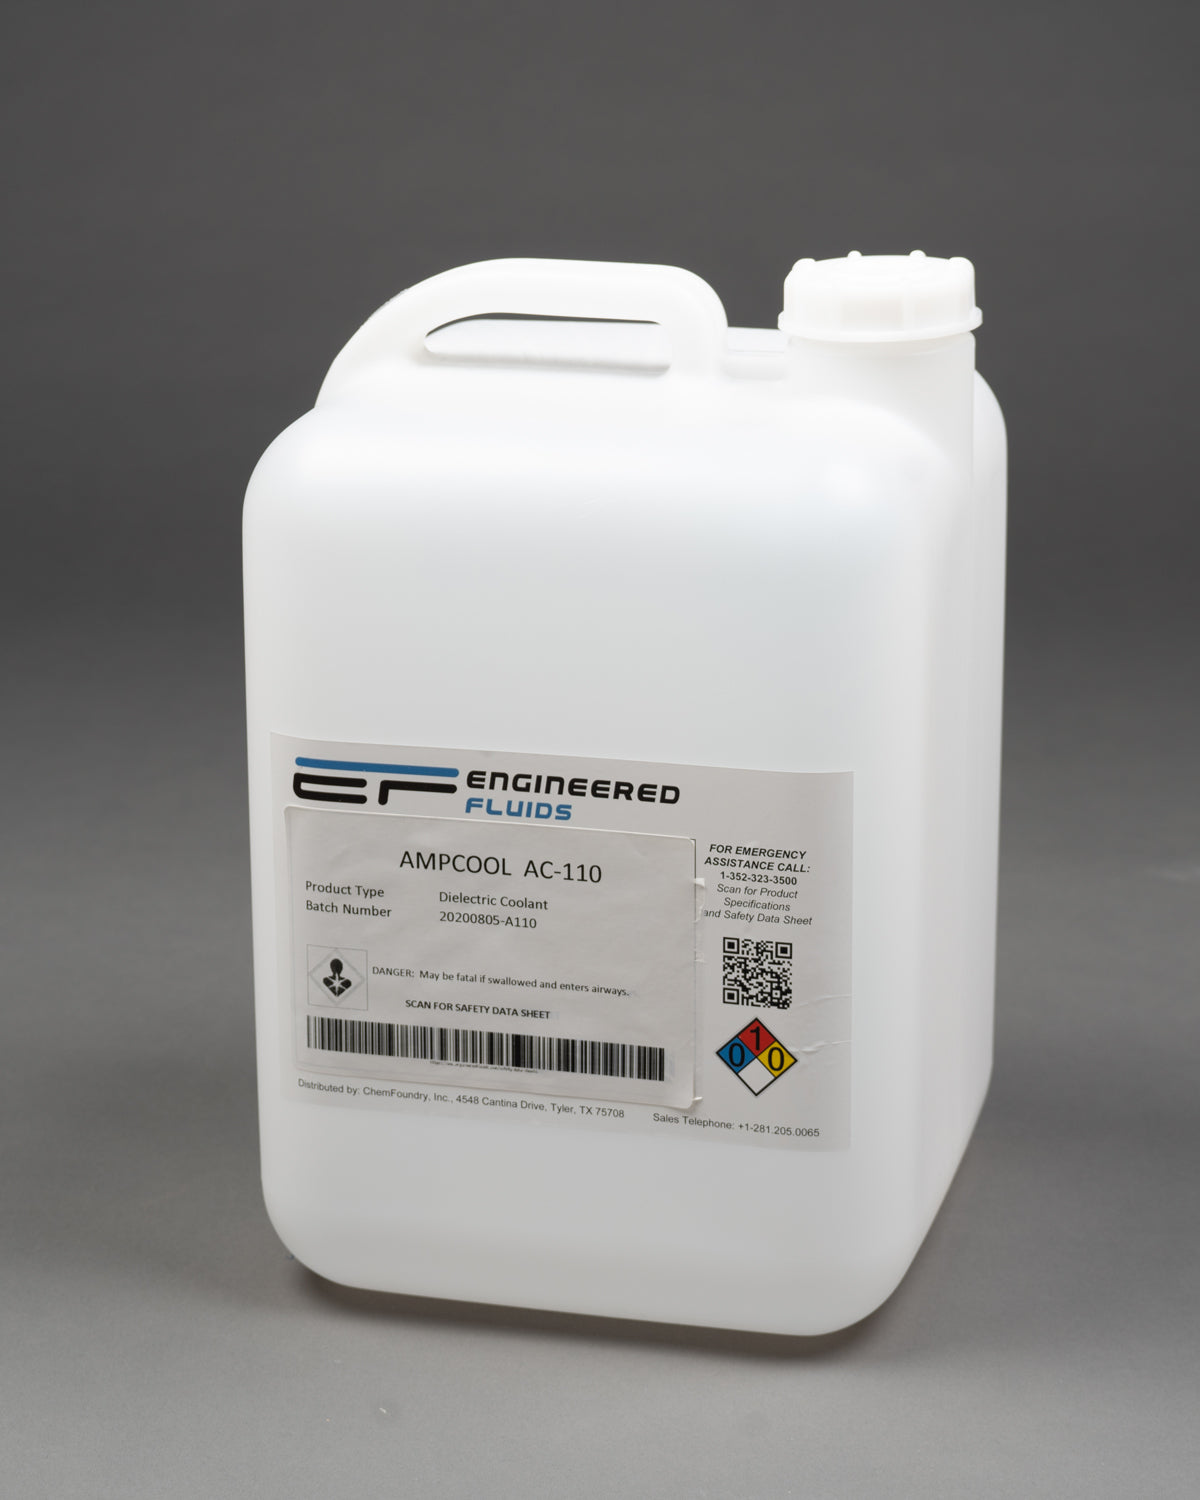 Can AmpCool be dyed to assist in identifying leaks/spills?